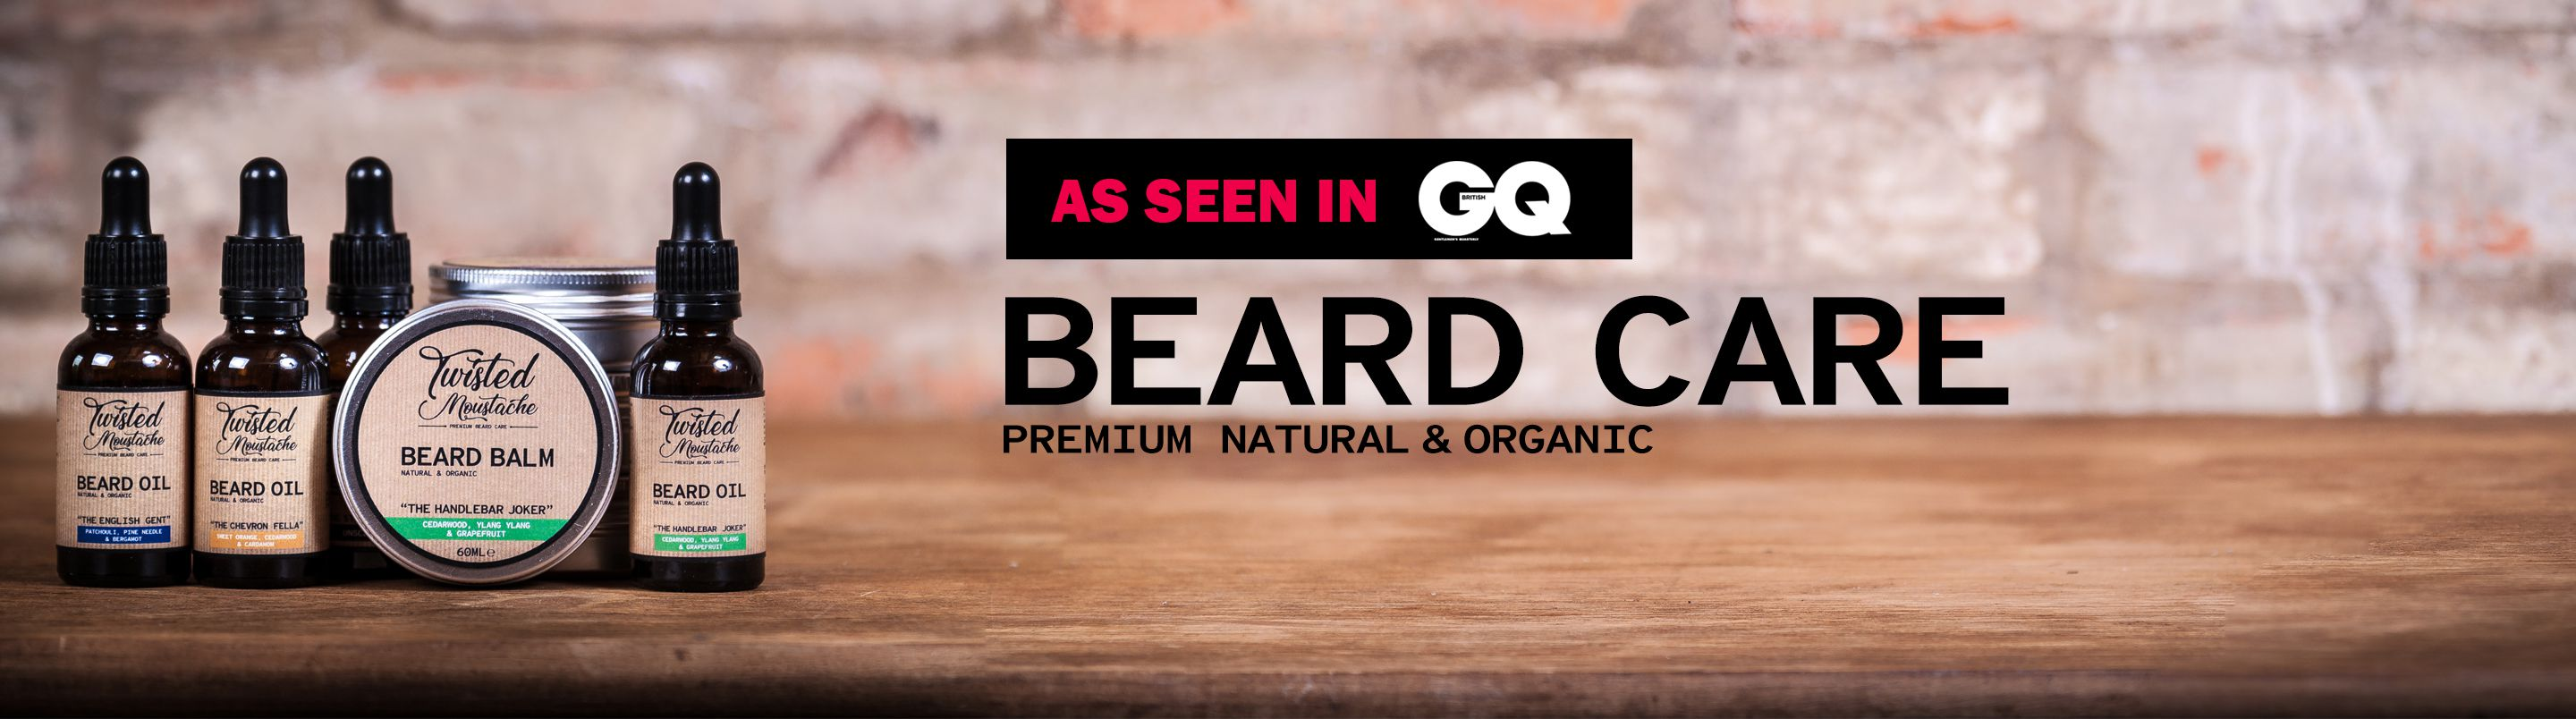 Premium quality beard care - Our latest offers